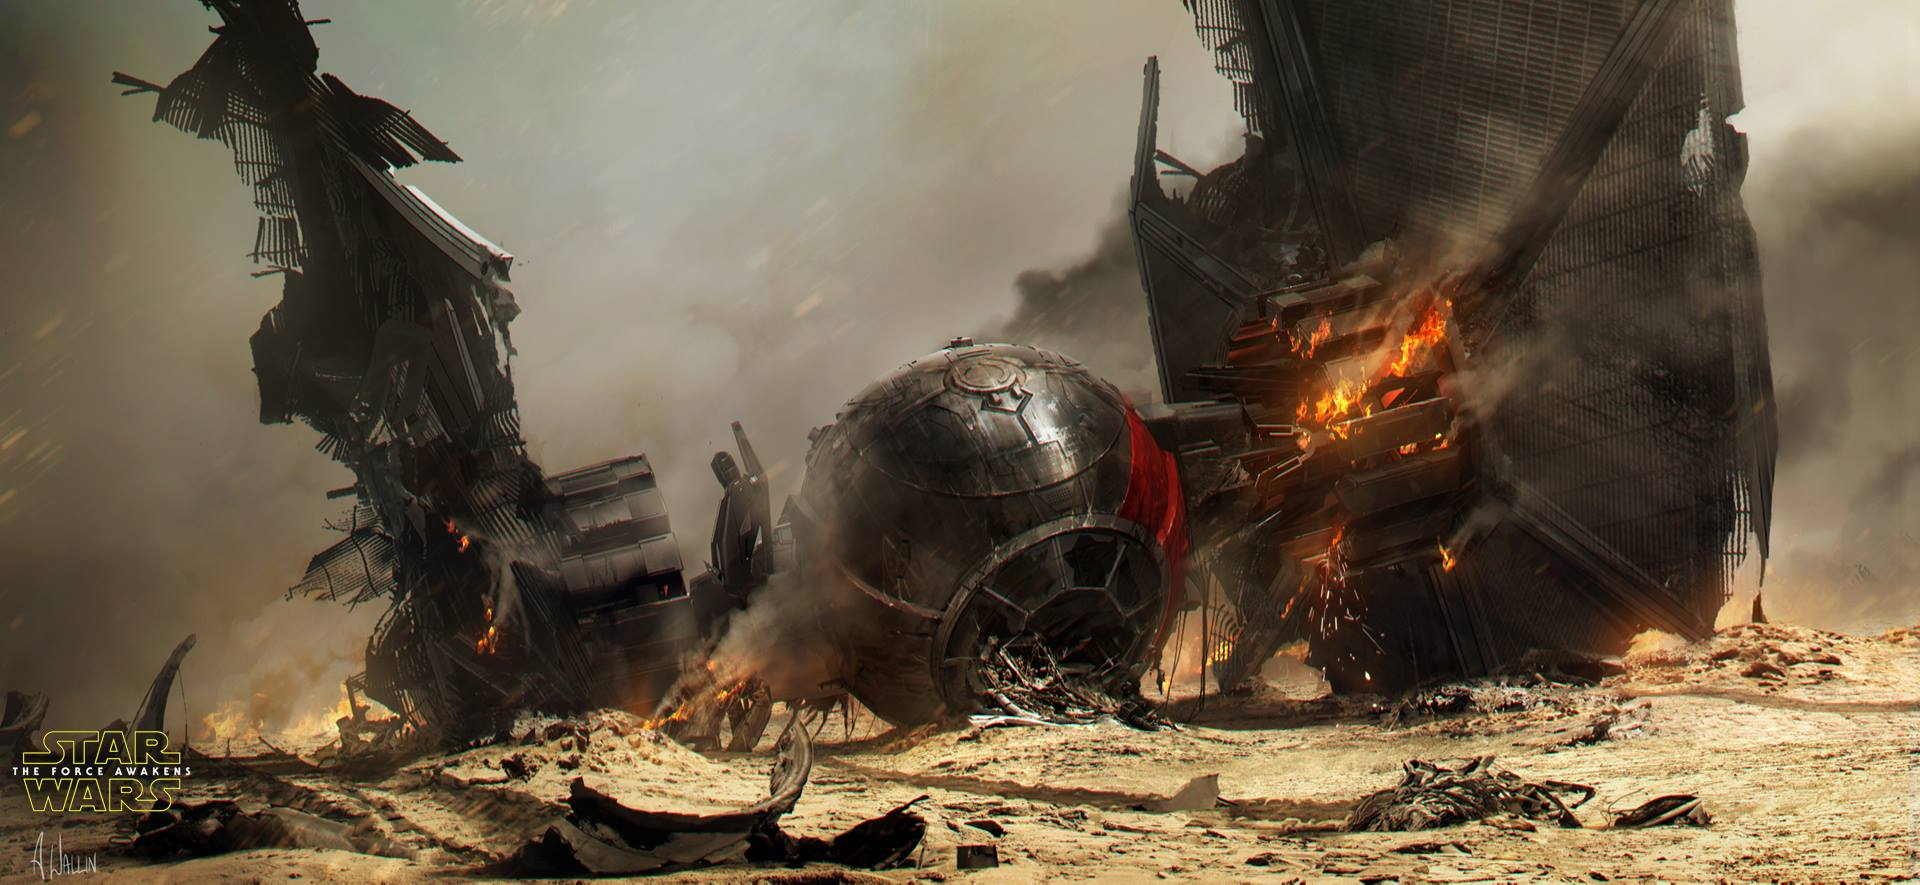 Star Wars The Force Awakens Concept Art By Andr 233 E Wallin